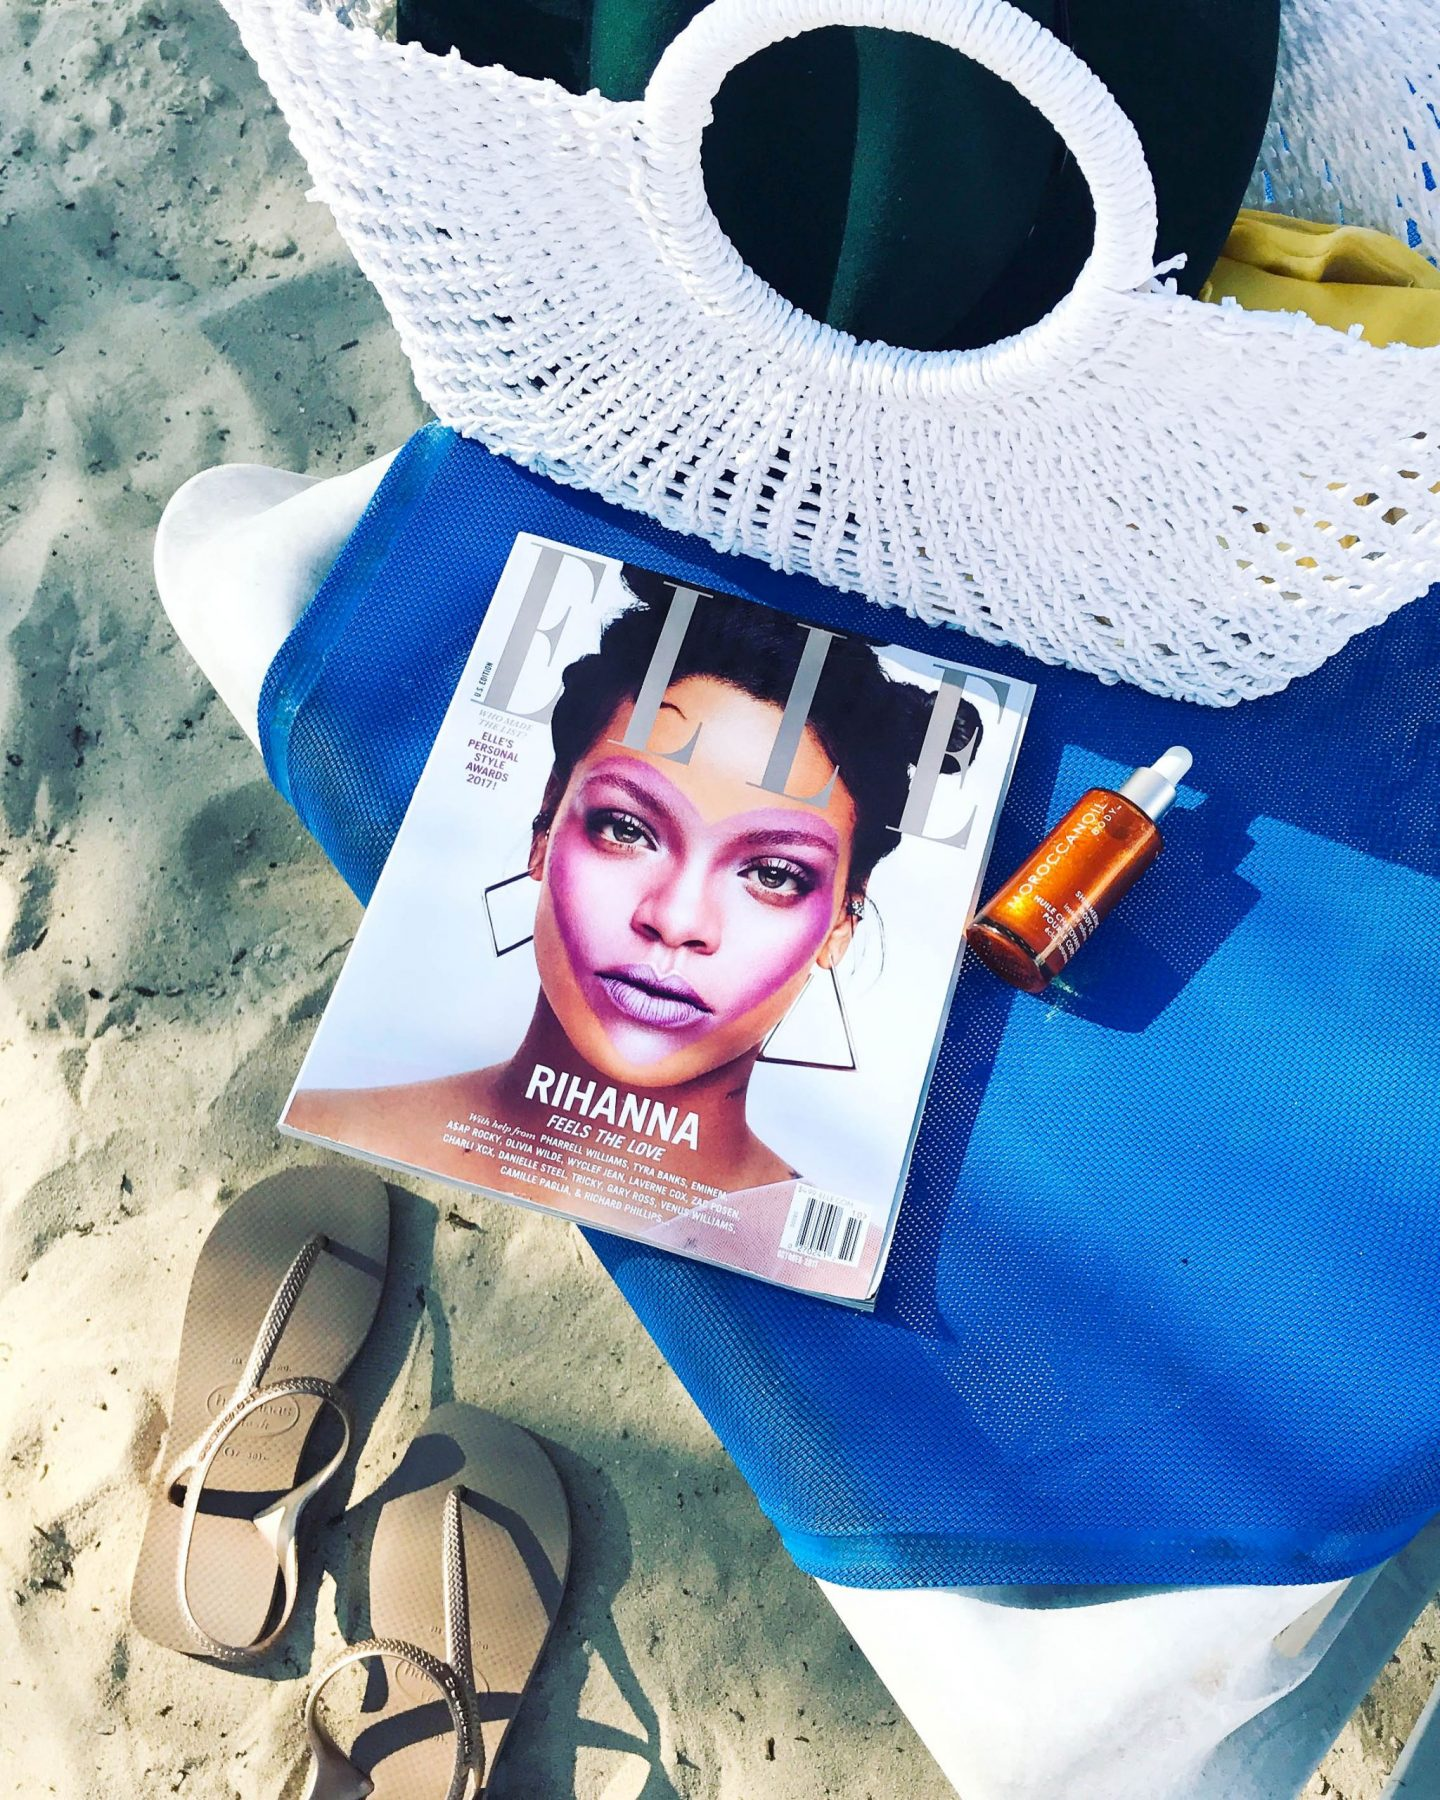 Beauty: Why You Need To Take Moroccanoil With You On Your Next Vacay